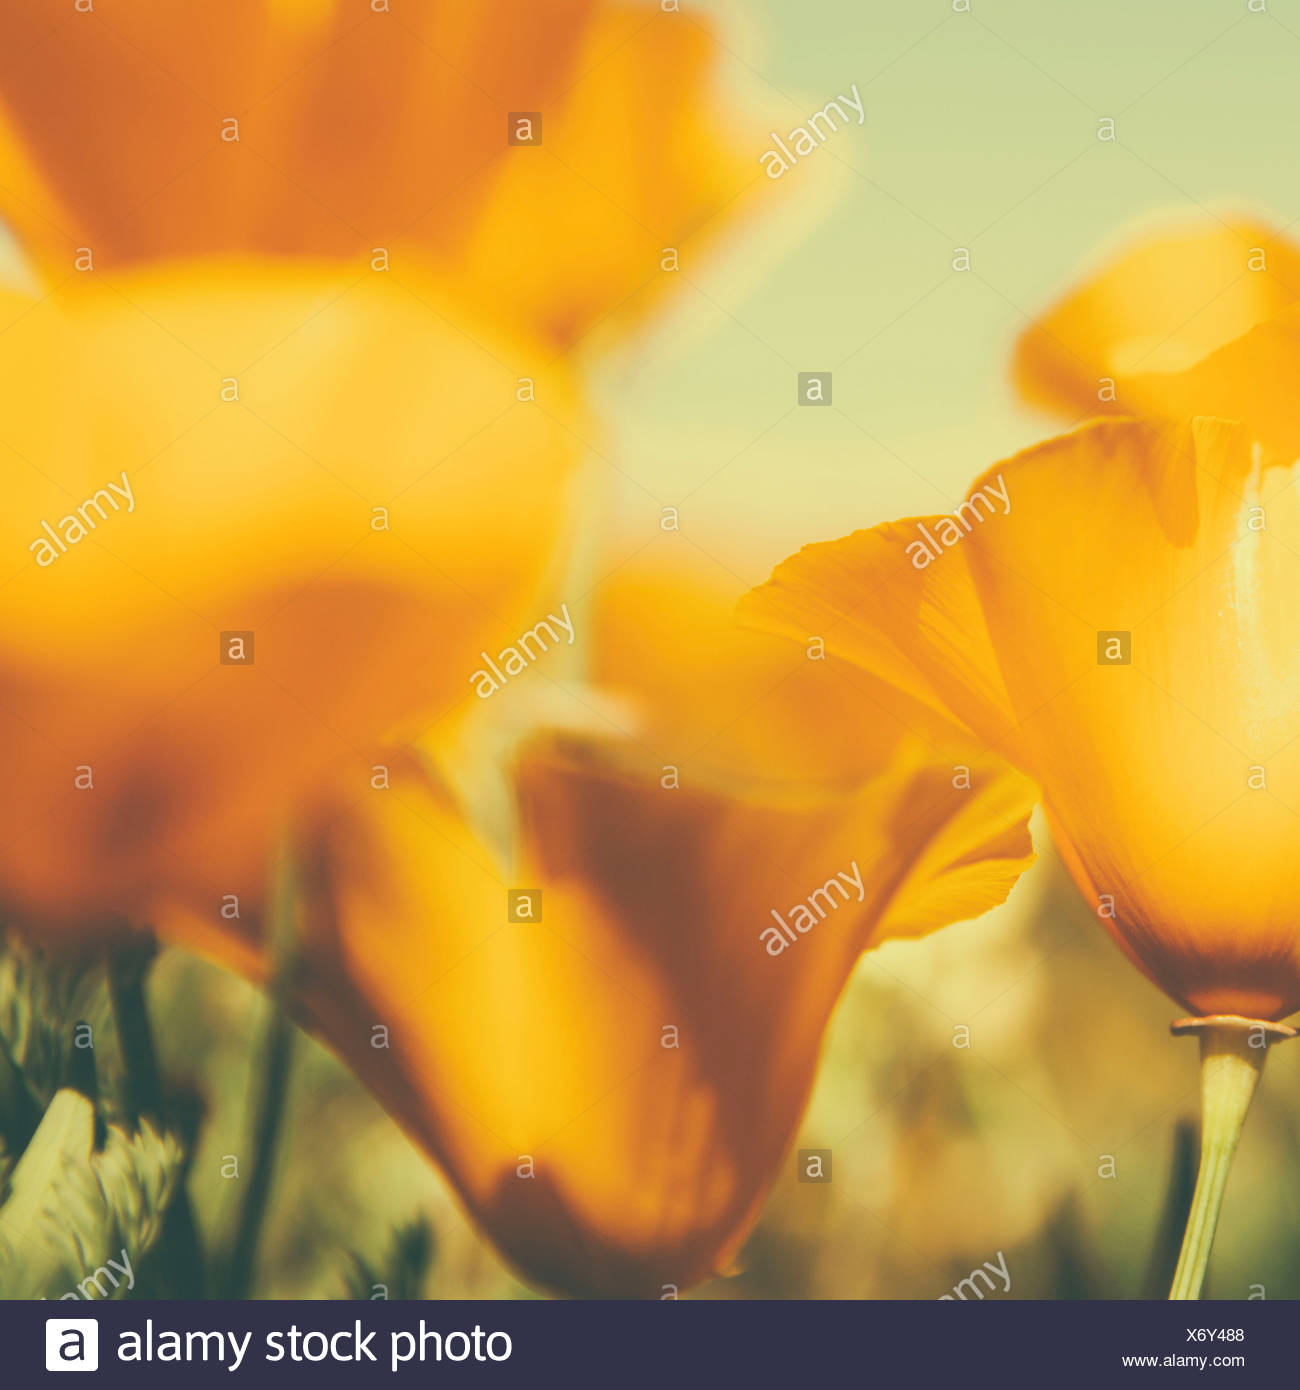 California poppies, Eschscholzia californica, flowering. Bright yellow petals. - Stock Image